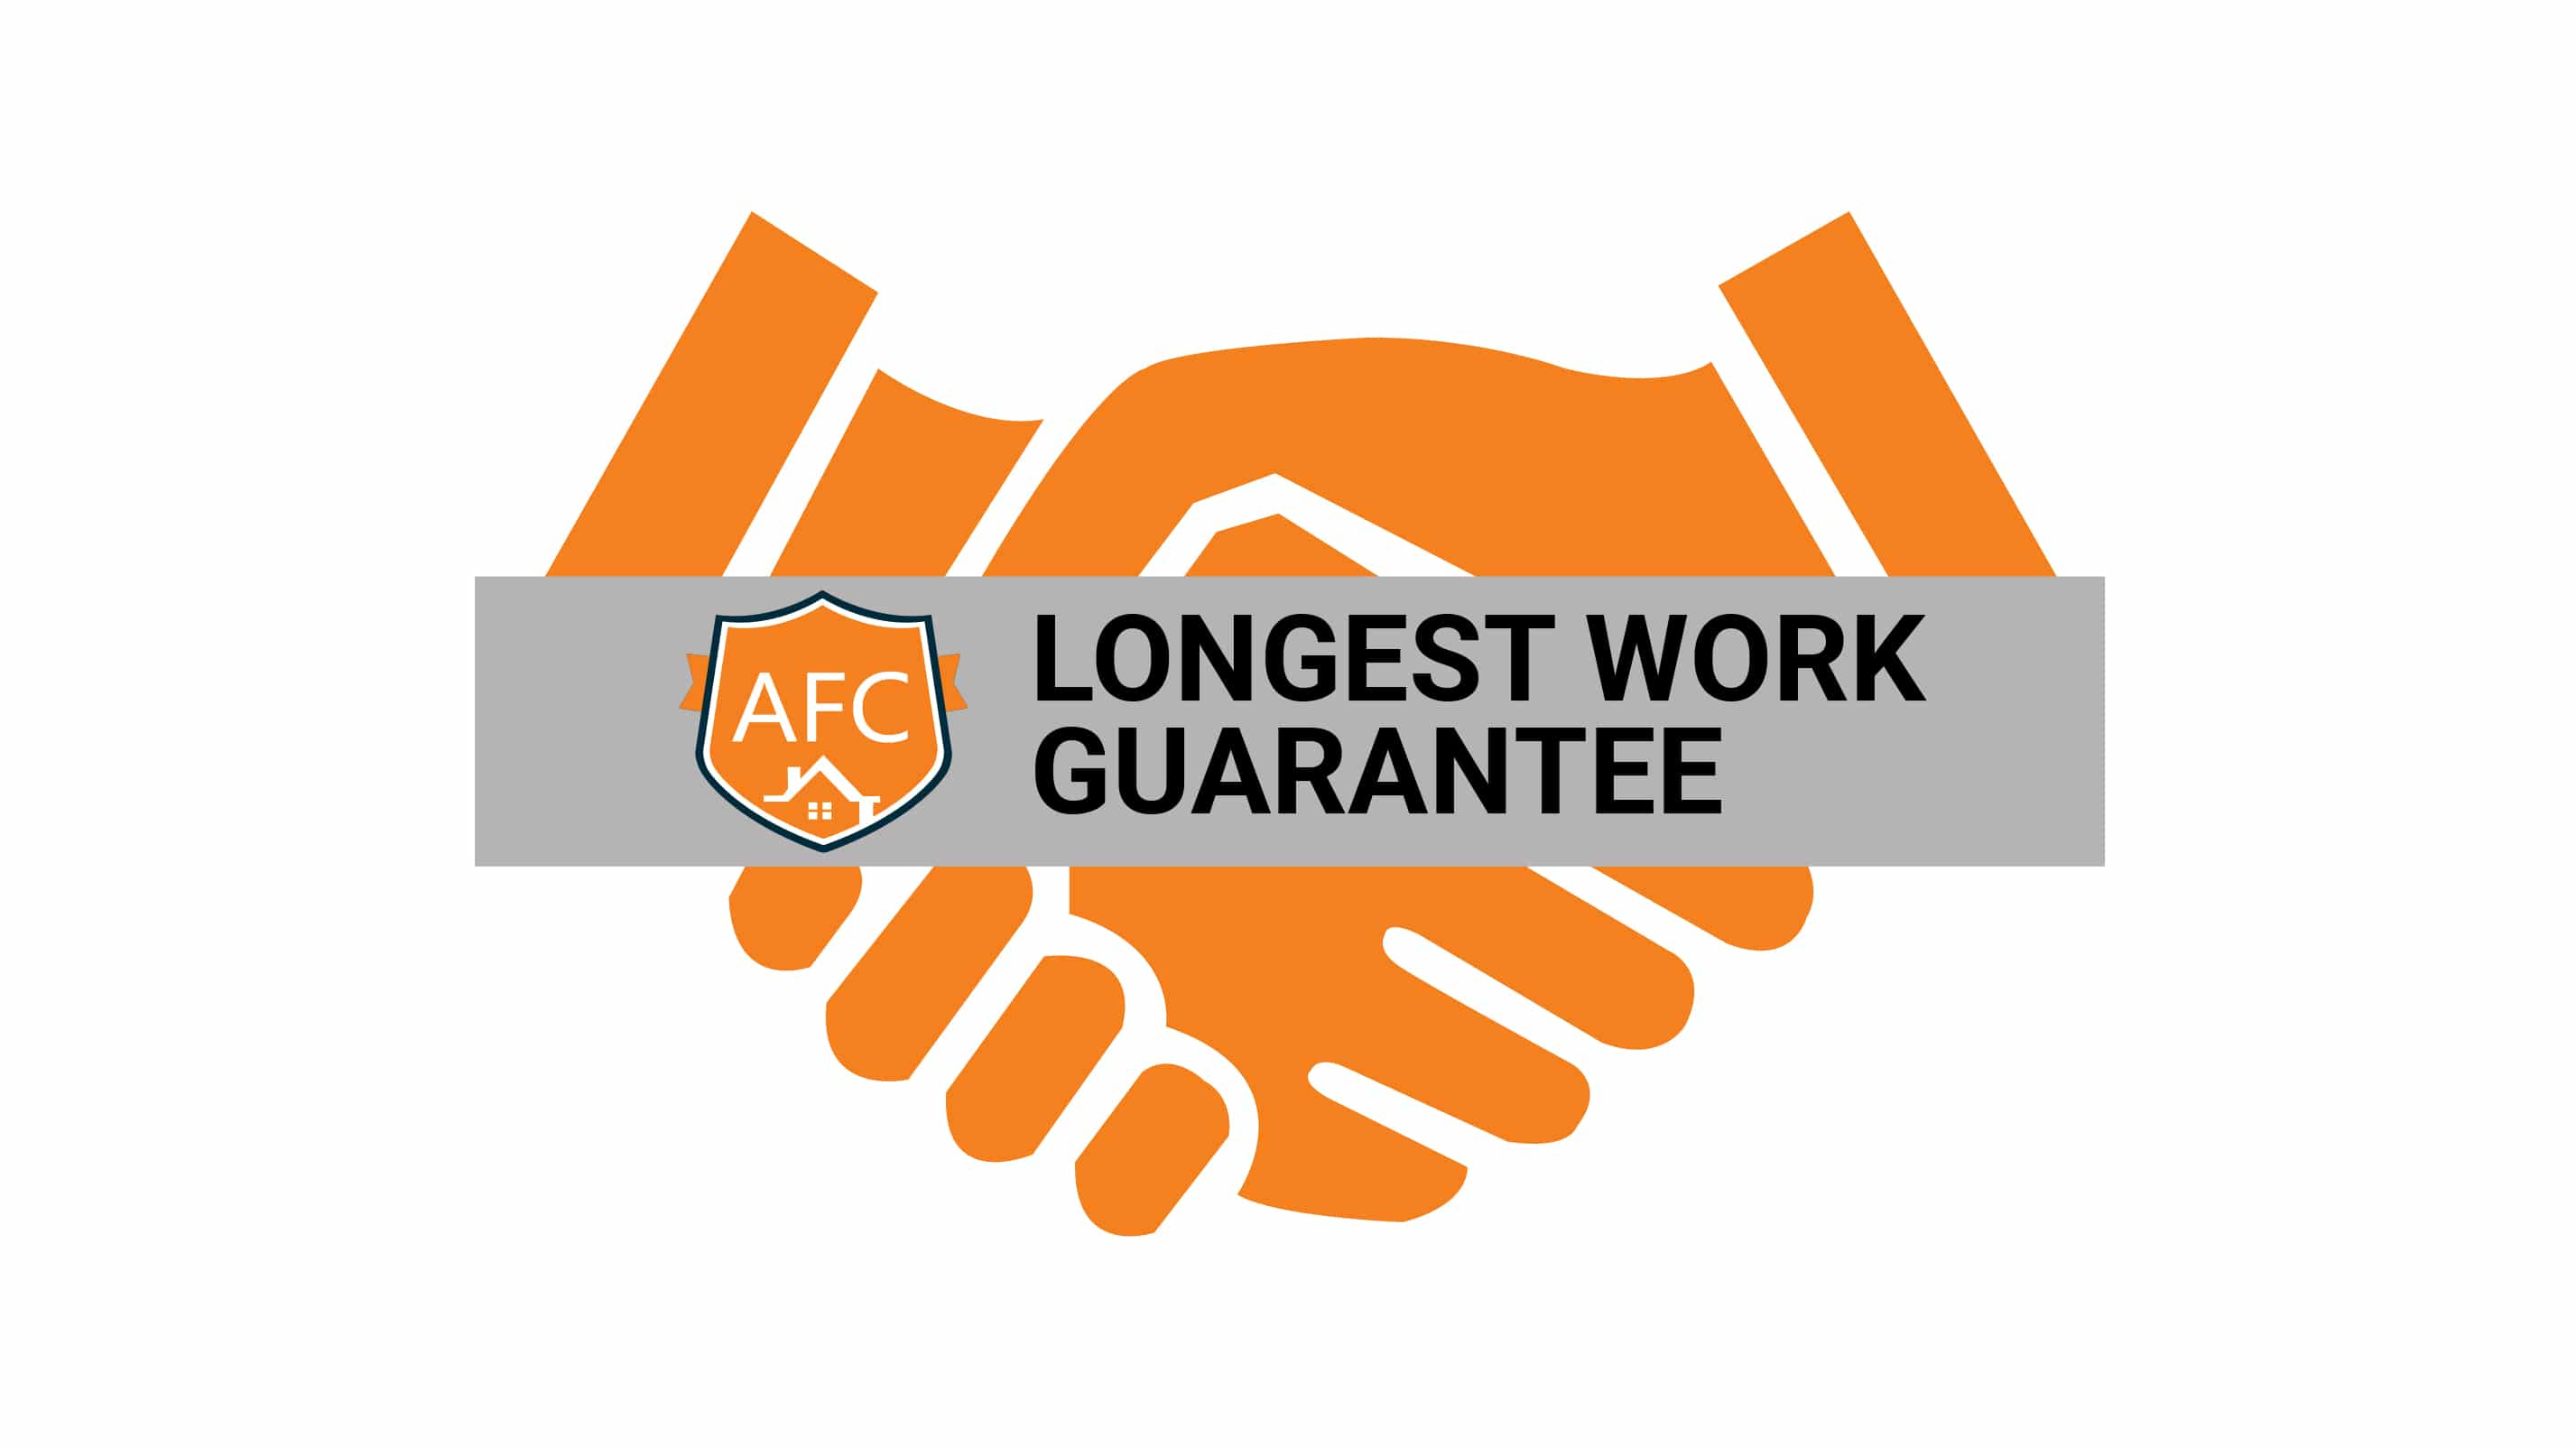 Best Home Warranty Work Guarantee